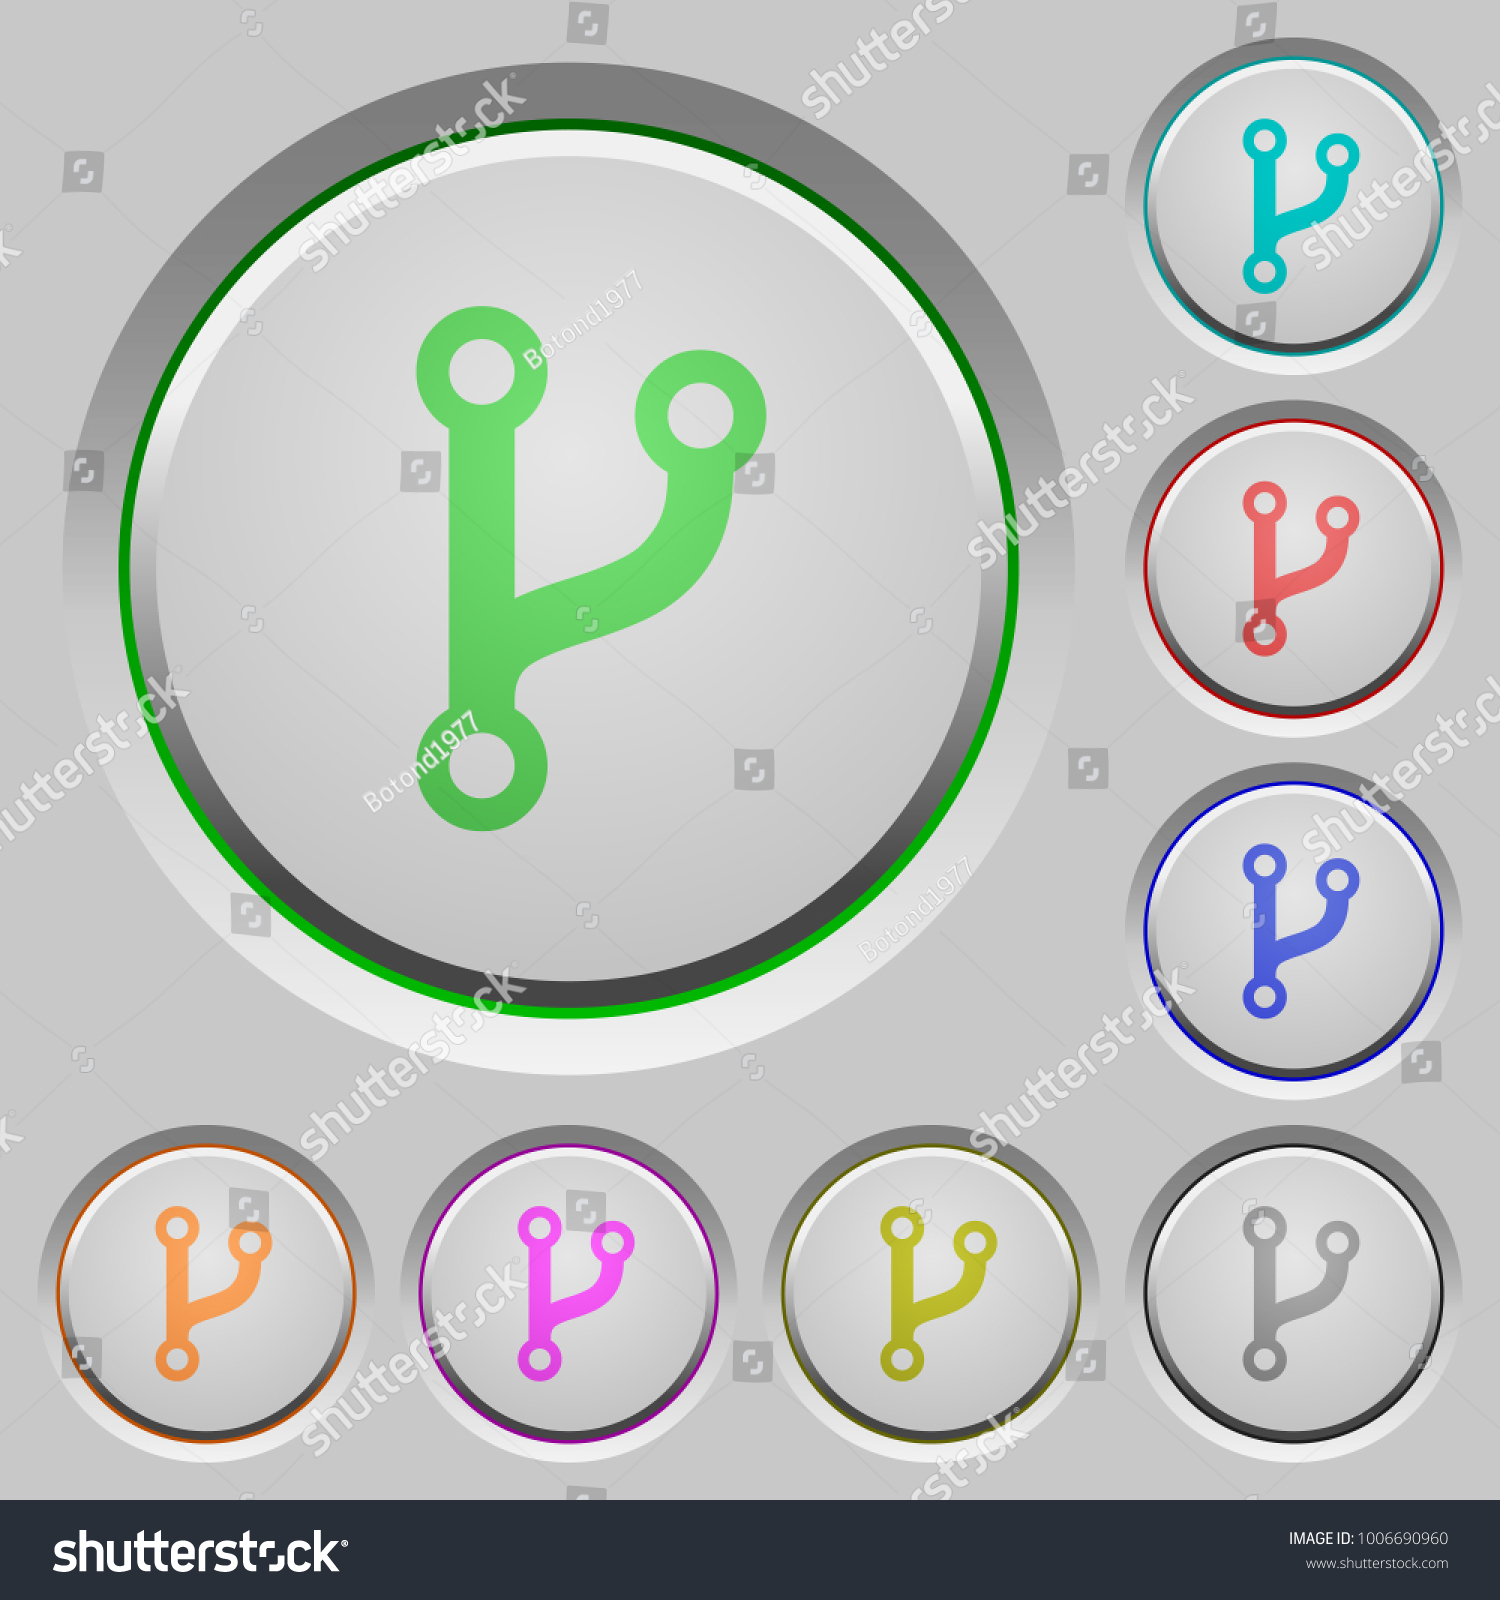 Code Fork Color Icons On Sunk Stock Vector 1006690960 - Shutterstock